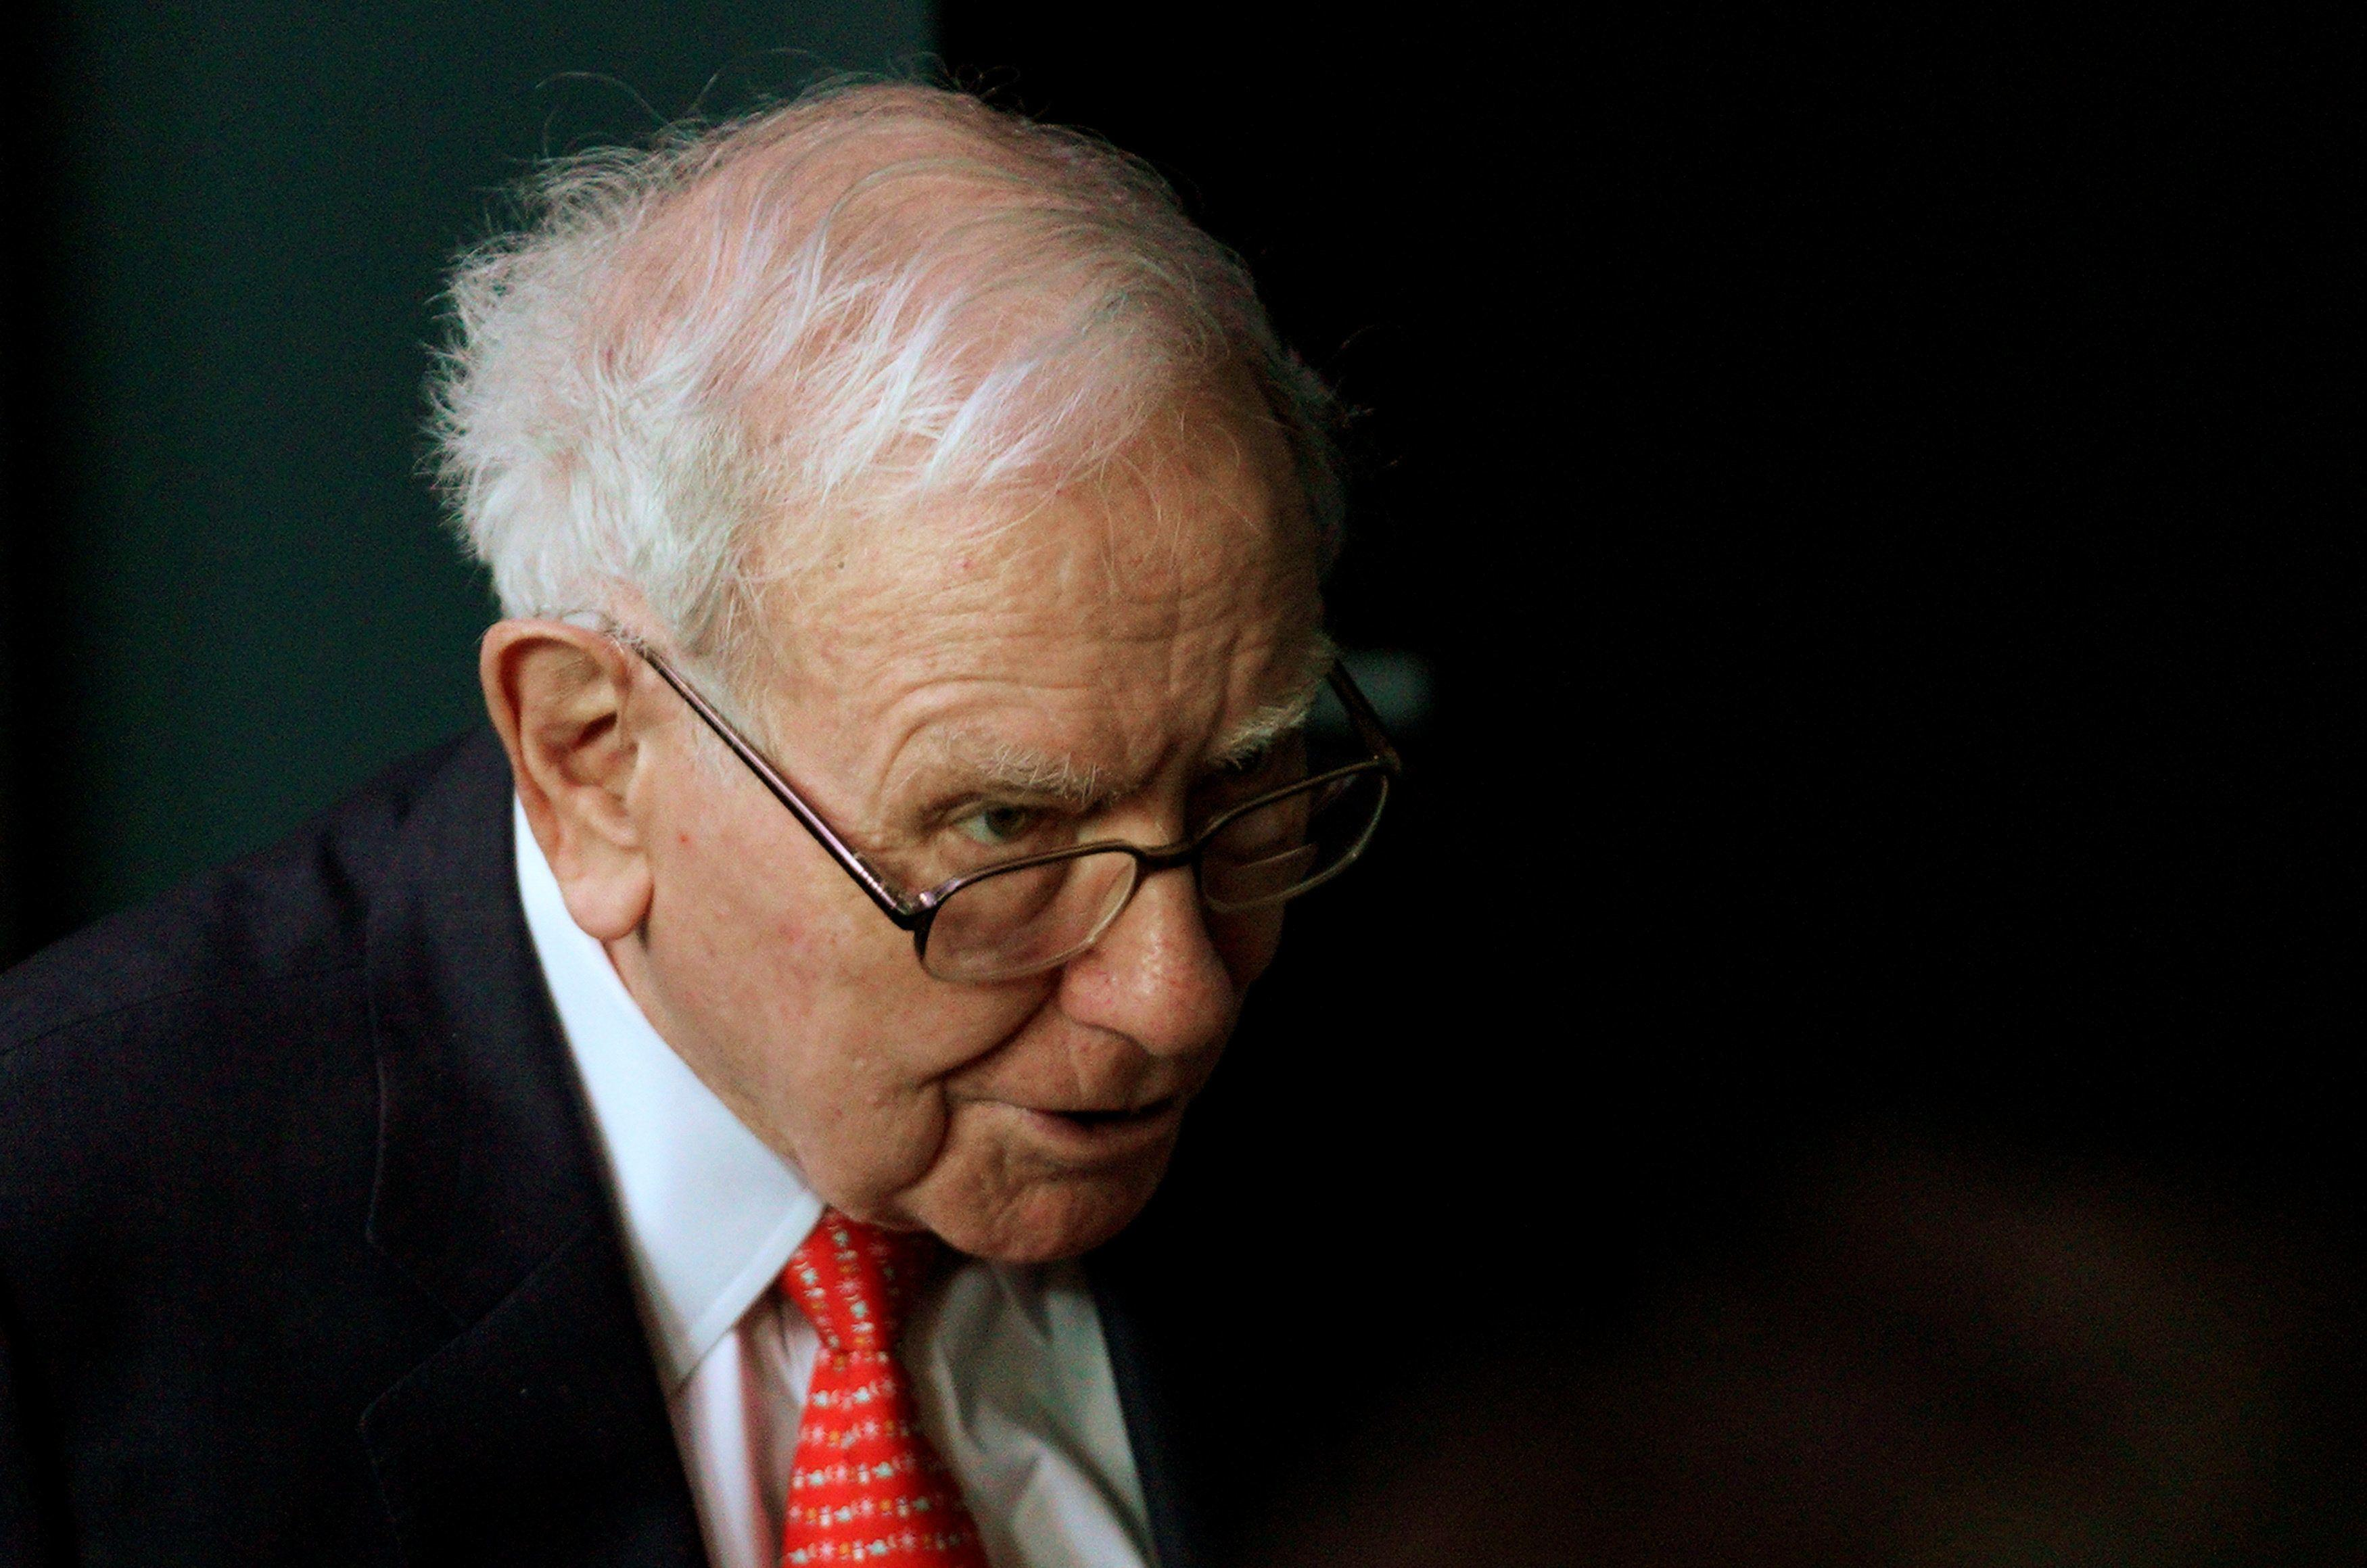 Warren Buffett identifies the 'best way' to address income inequality